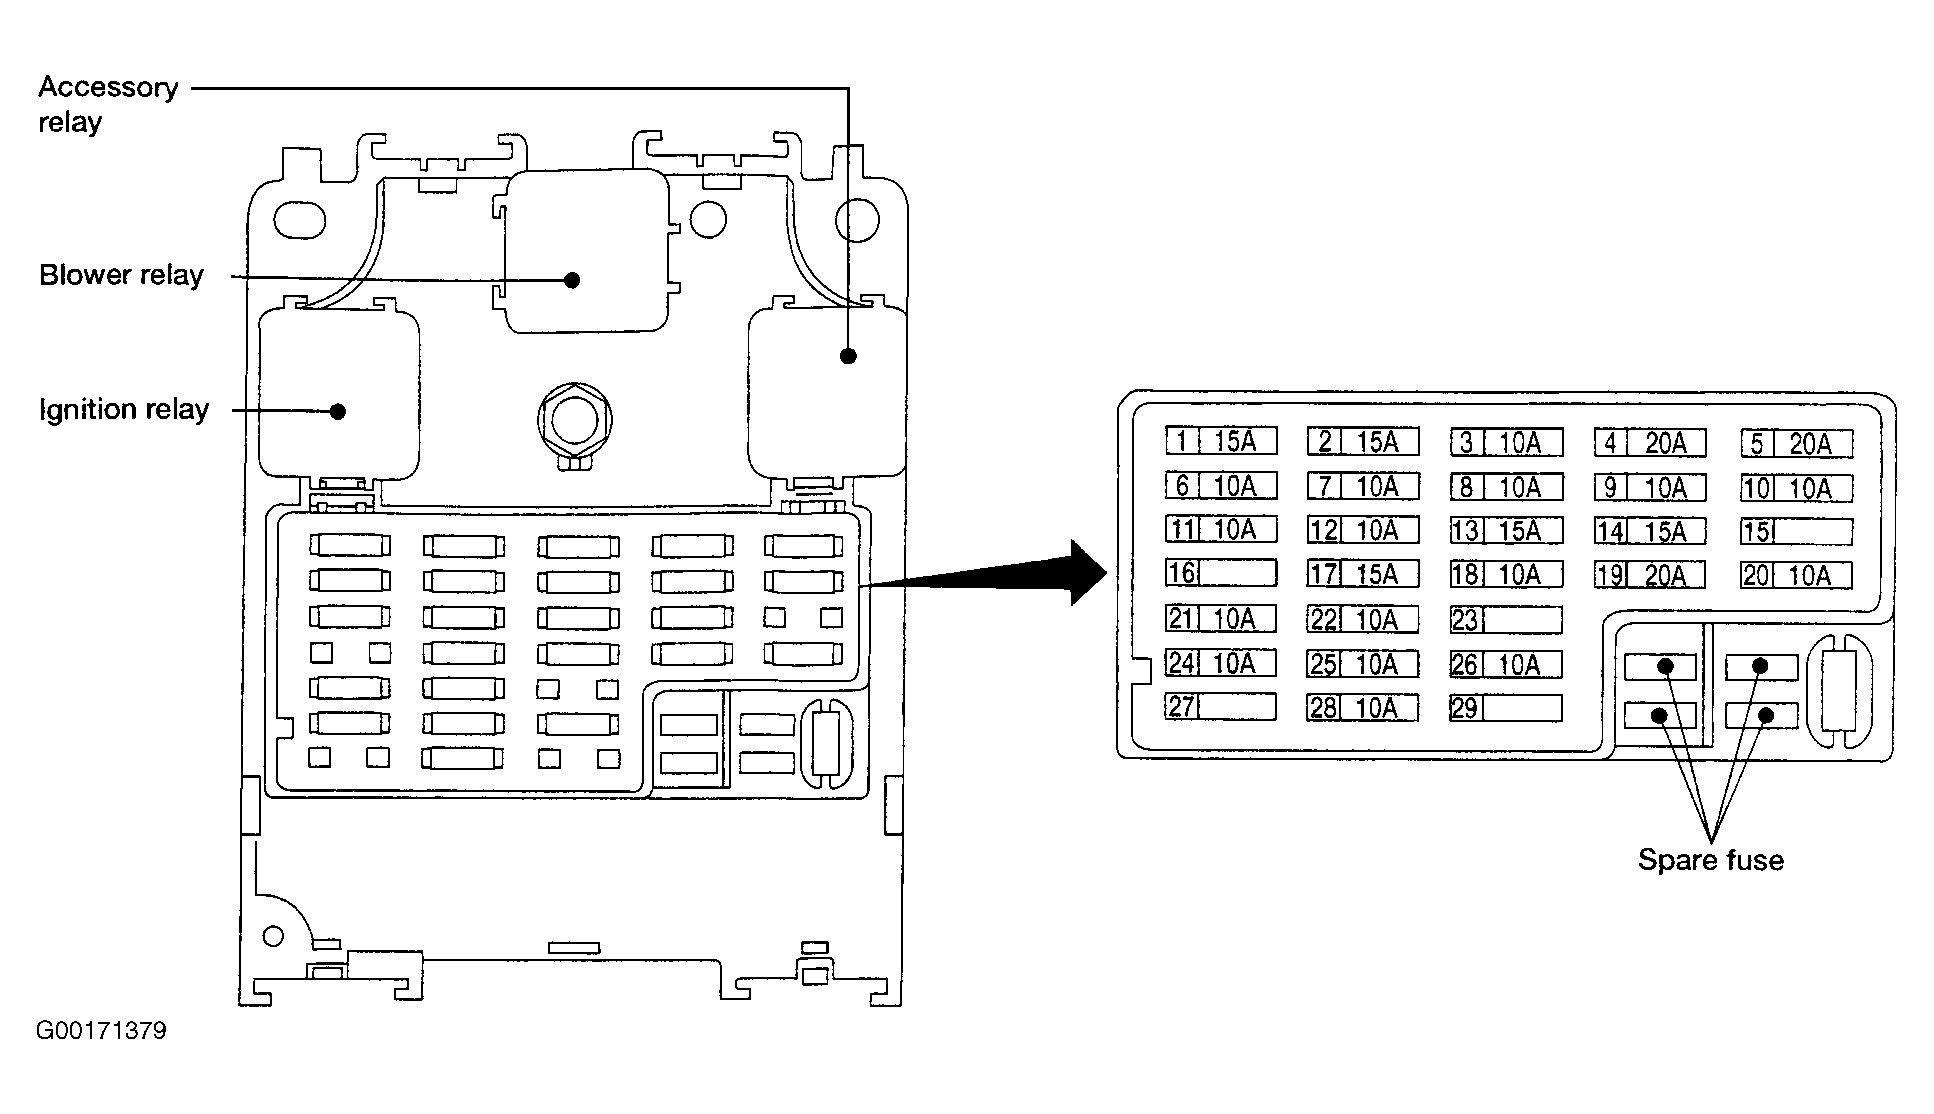 2011 Altima Fuse Box Diagram - Wiring Diagrams List on